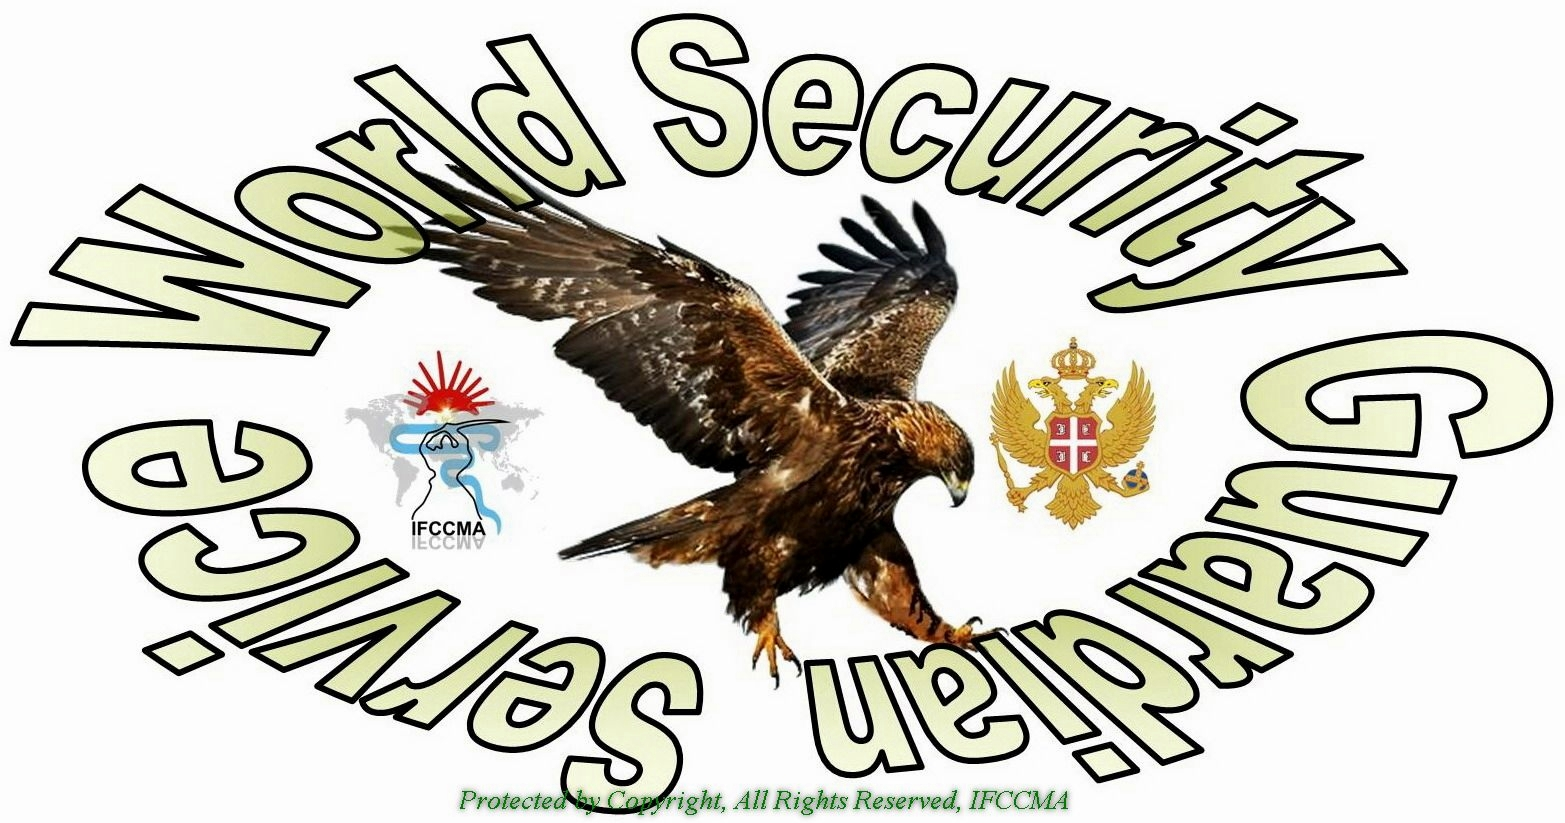 guardian security services essay